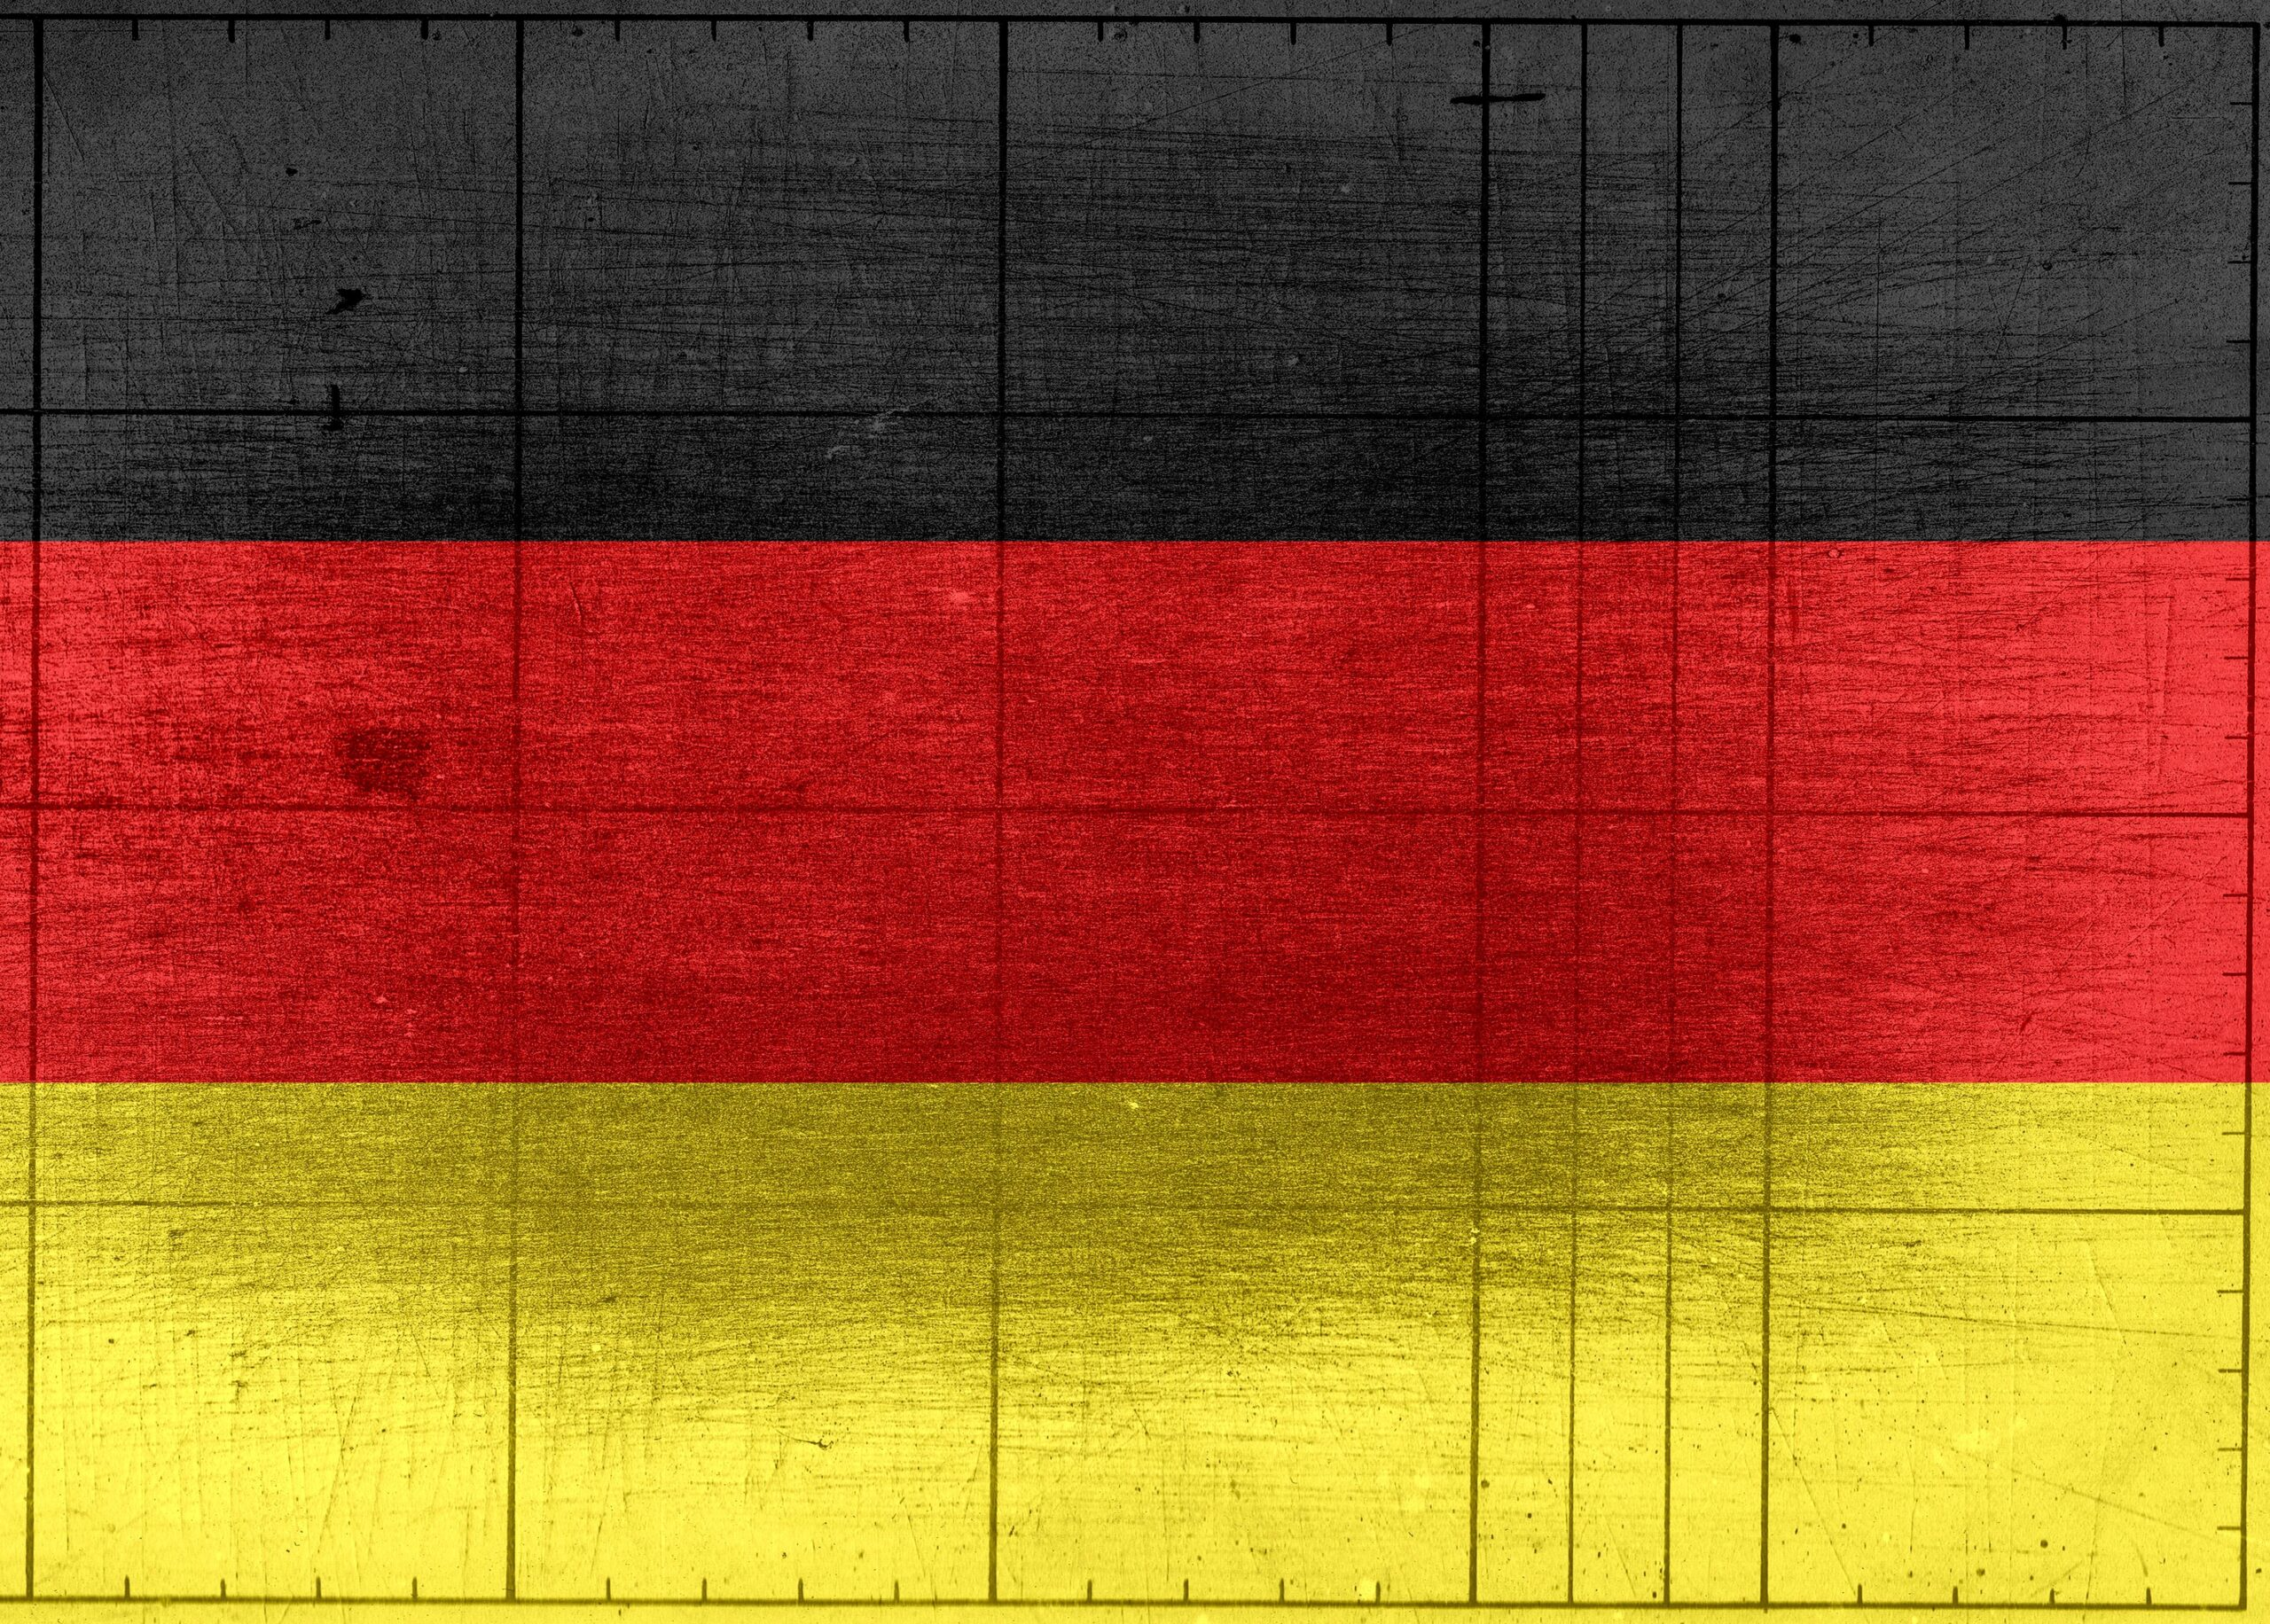 https://redinversionista.com/wp-content/uploads/2020/07/german-flag-painted-on-wooden-background-968308-scaled.jpg